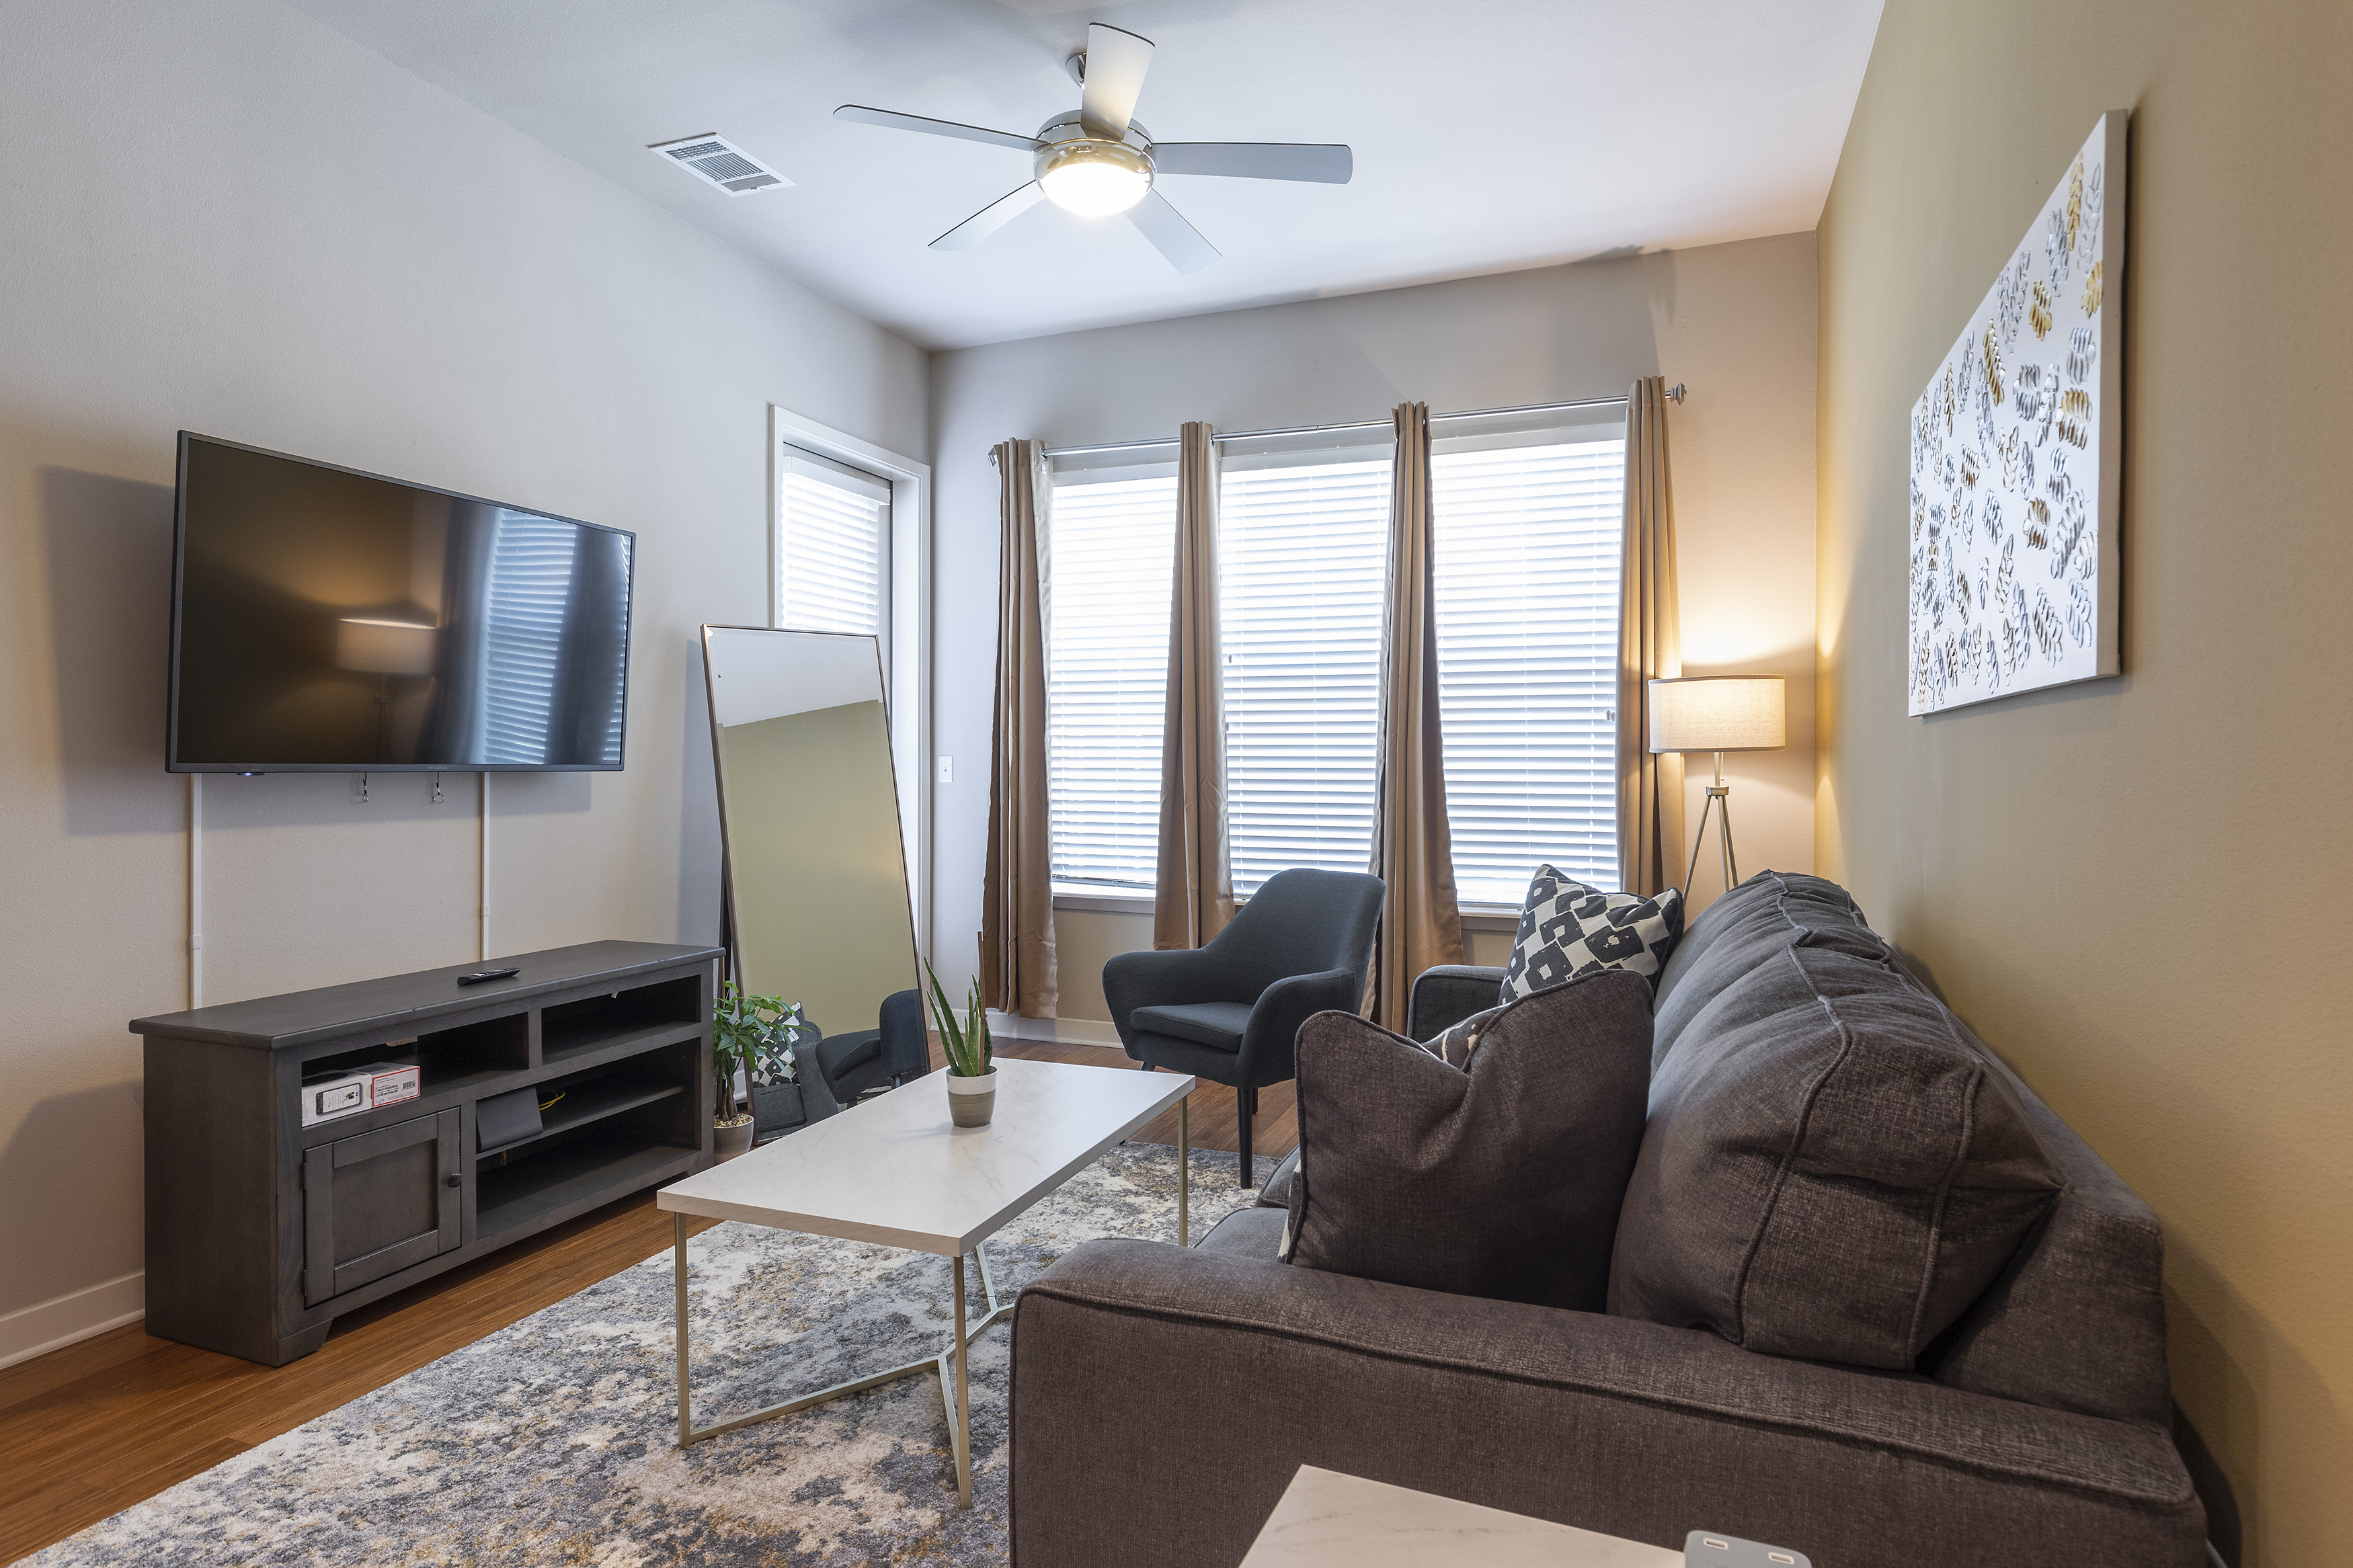 Apartment KING SIZE BED LUXURIOUS MED CENTER FULLY EQUIPPED CONDO photo 21441089